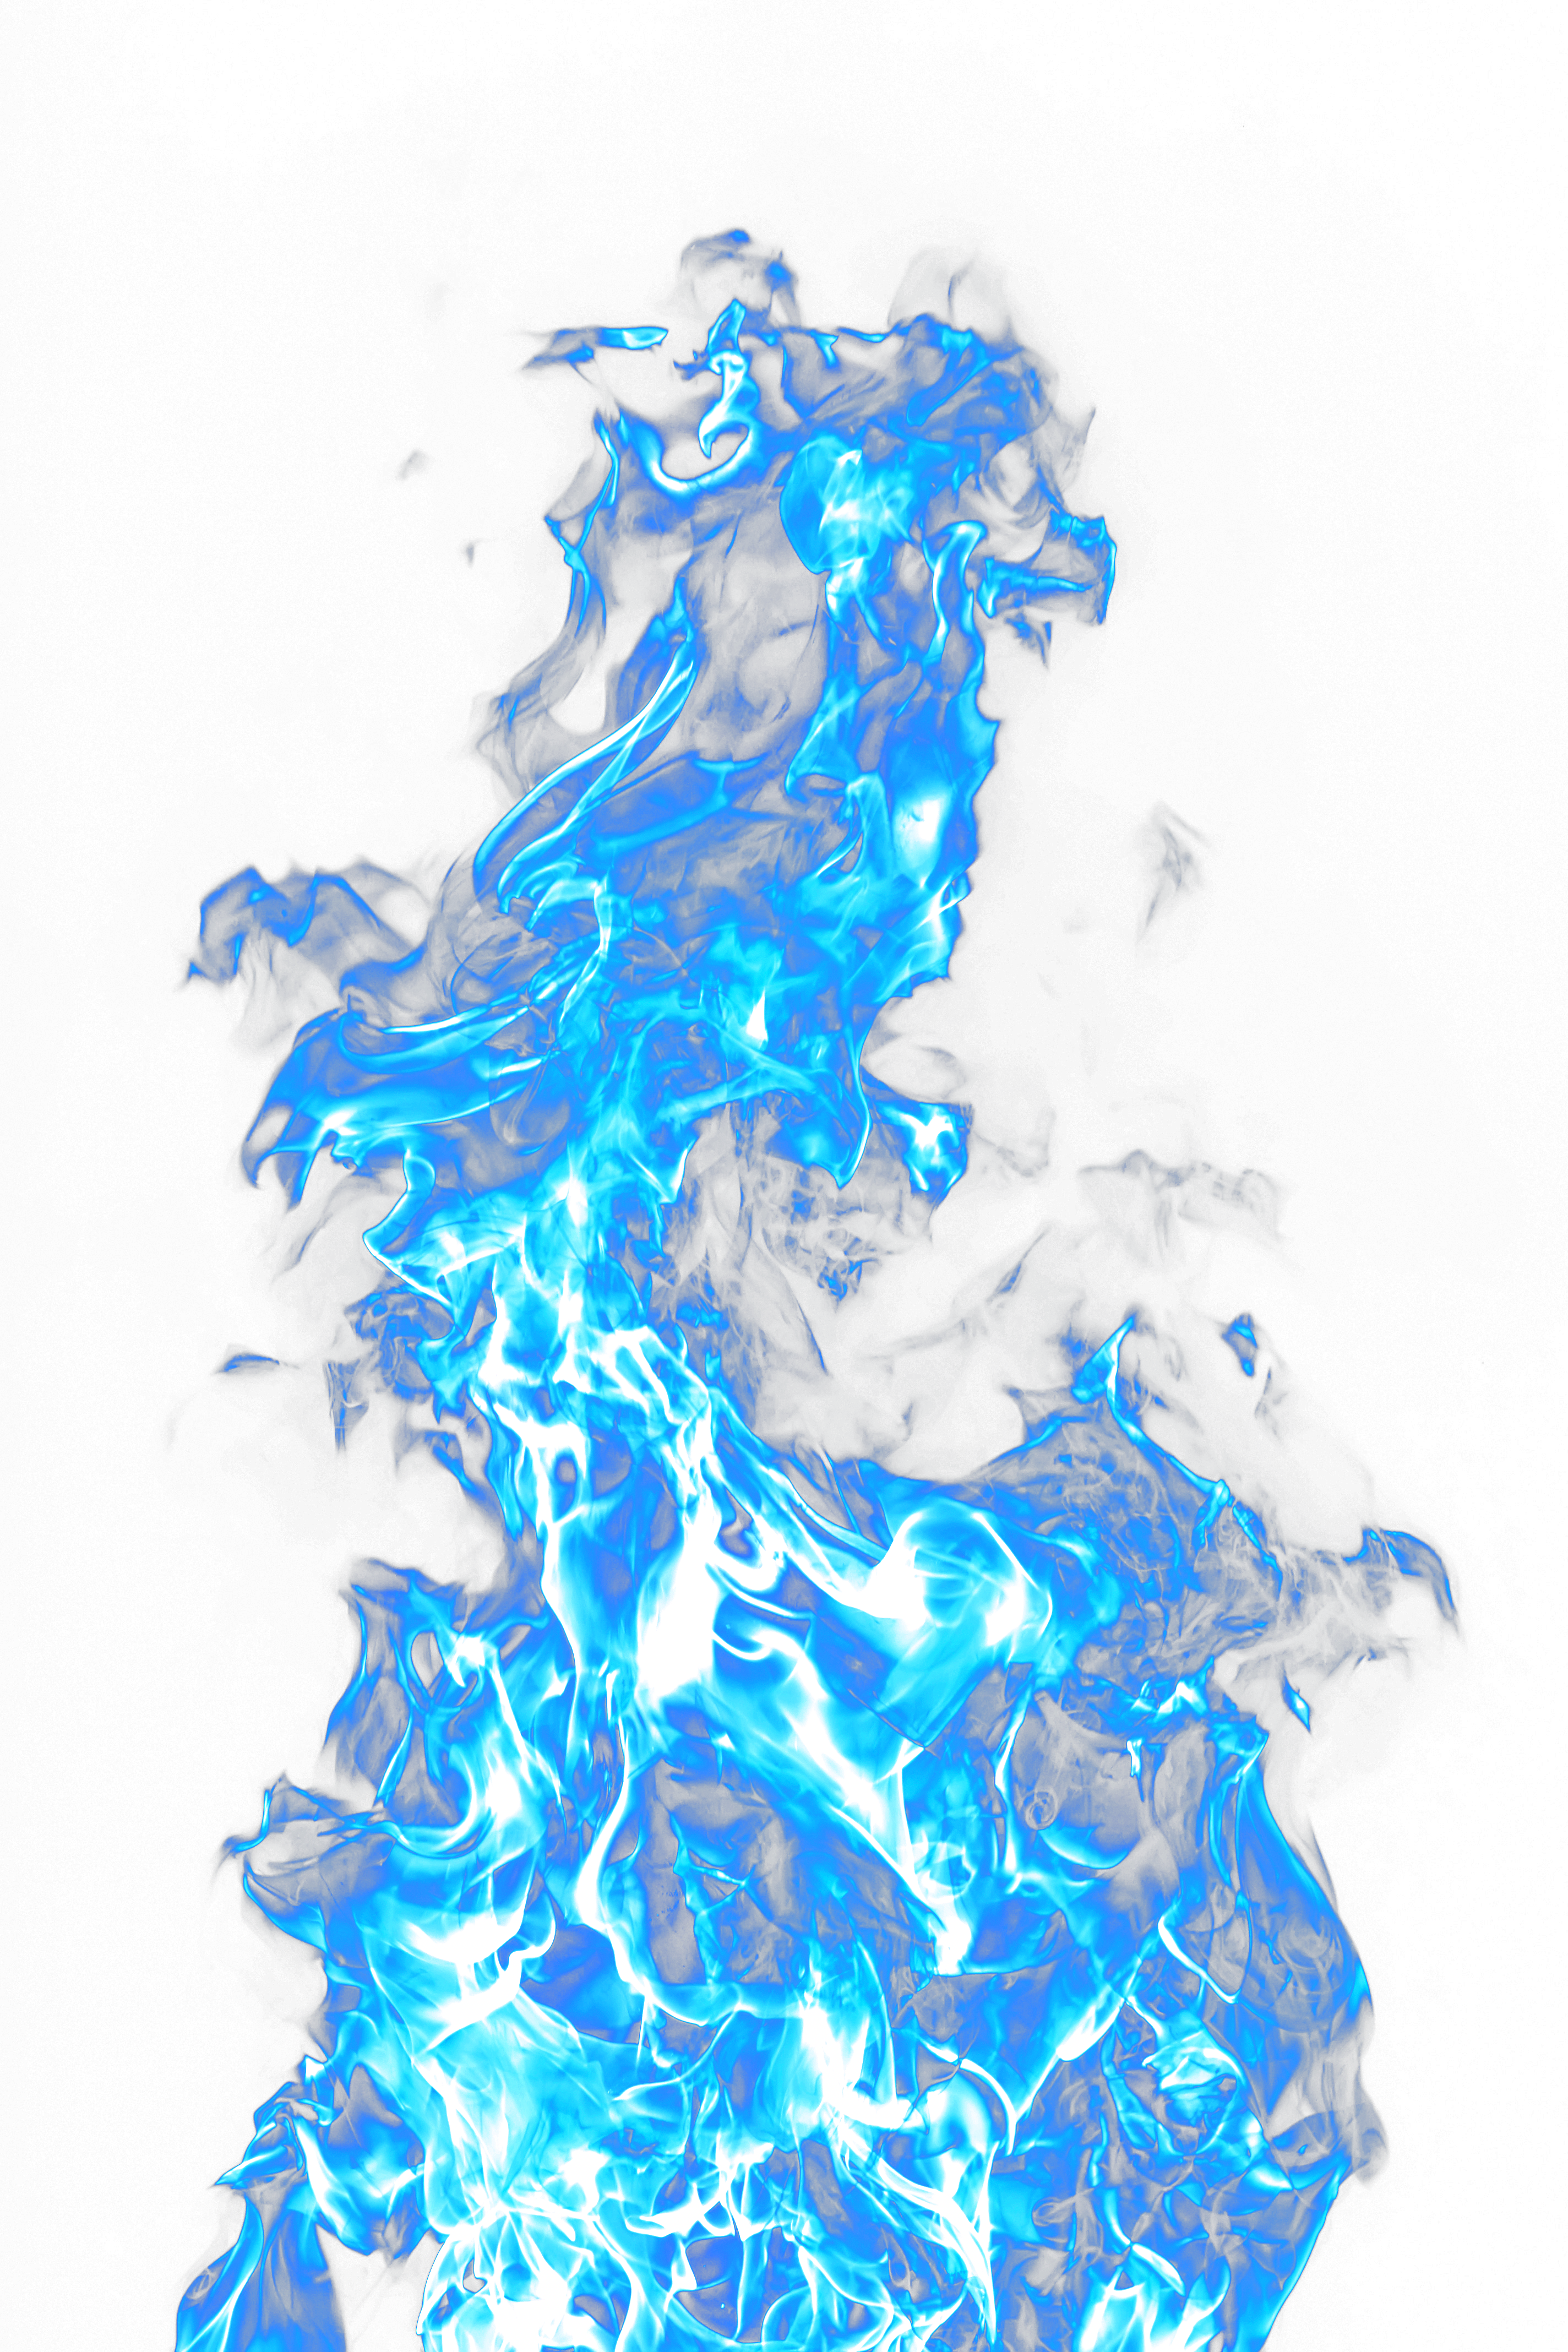 Blue flame png. Light beautiful transprent free